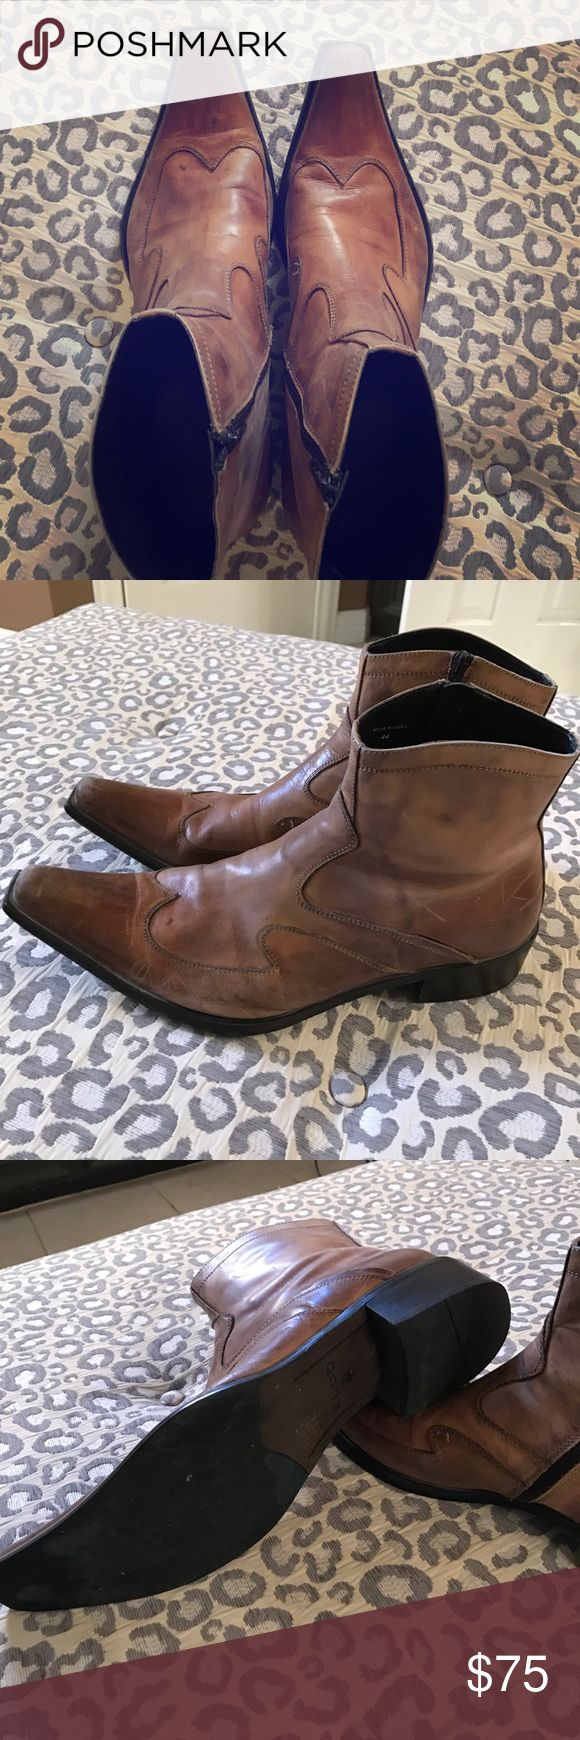 Men's tan Aldo boots Aldo boots, very stylish, looks great with jeans Aldo Shoes Boots